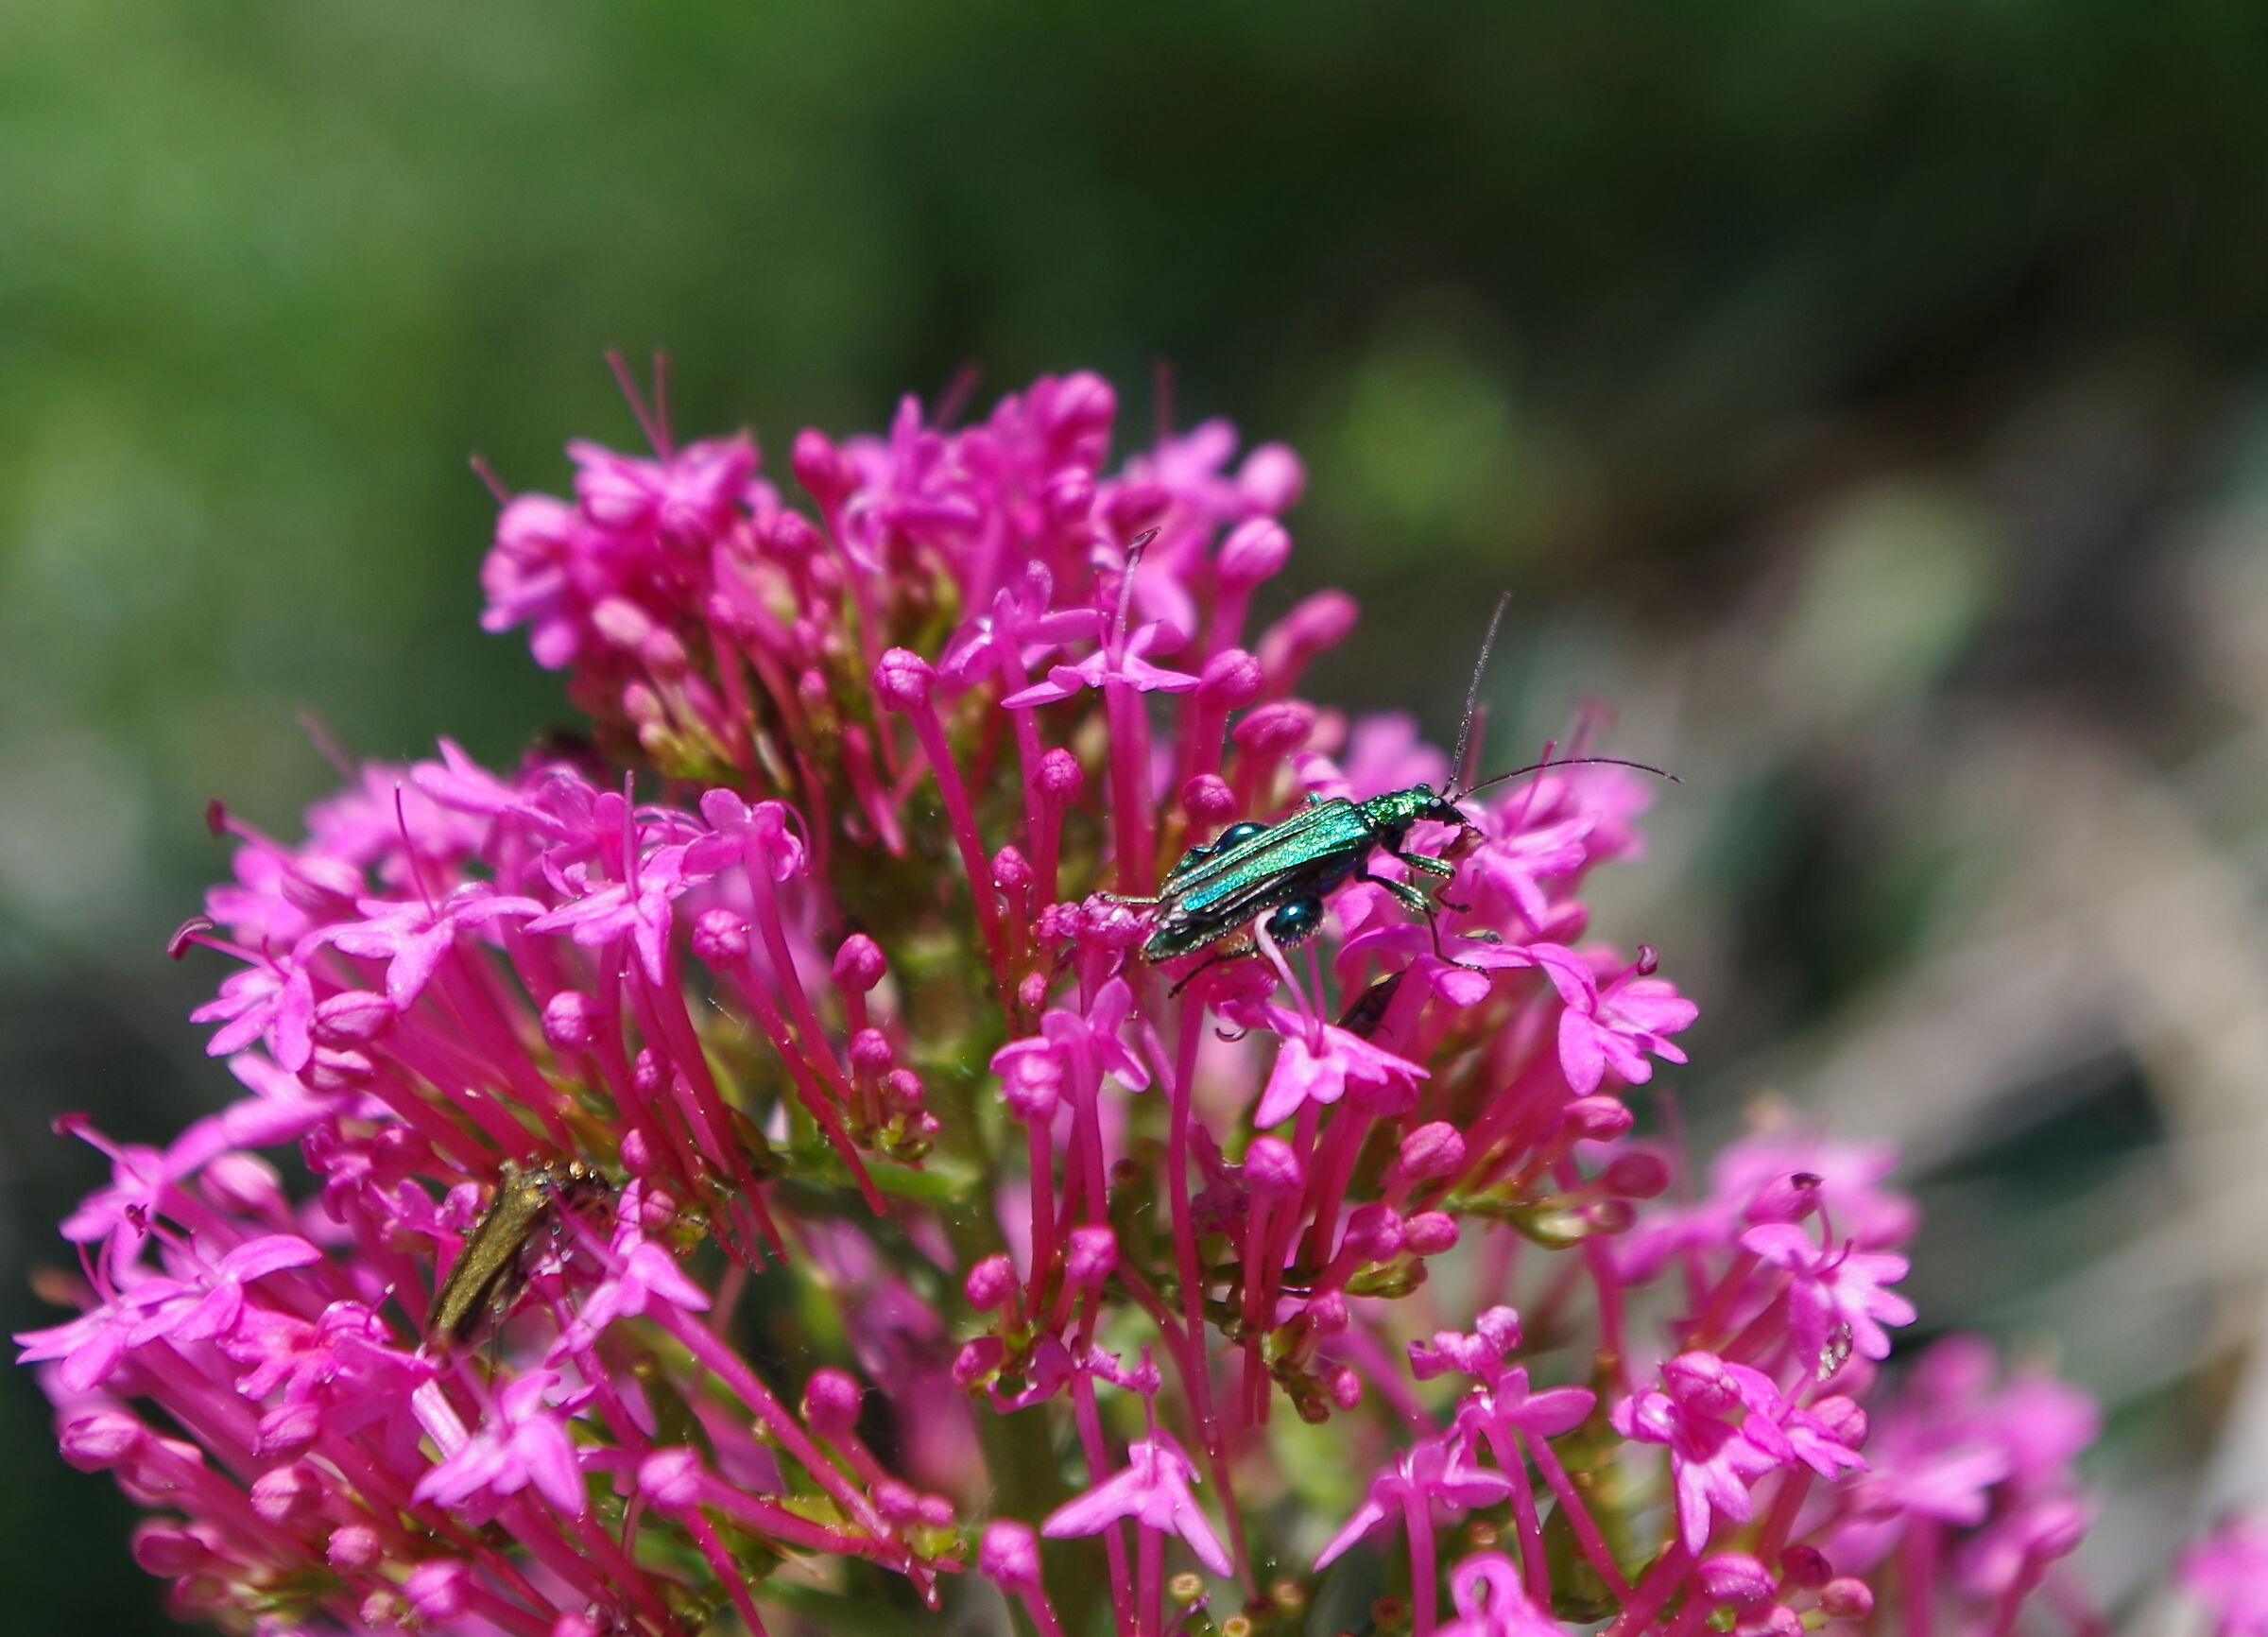 flowers and insects...